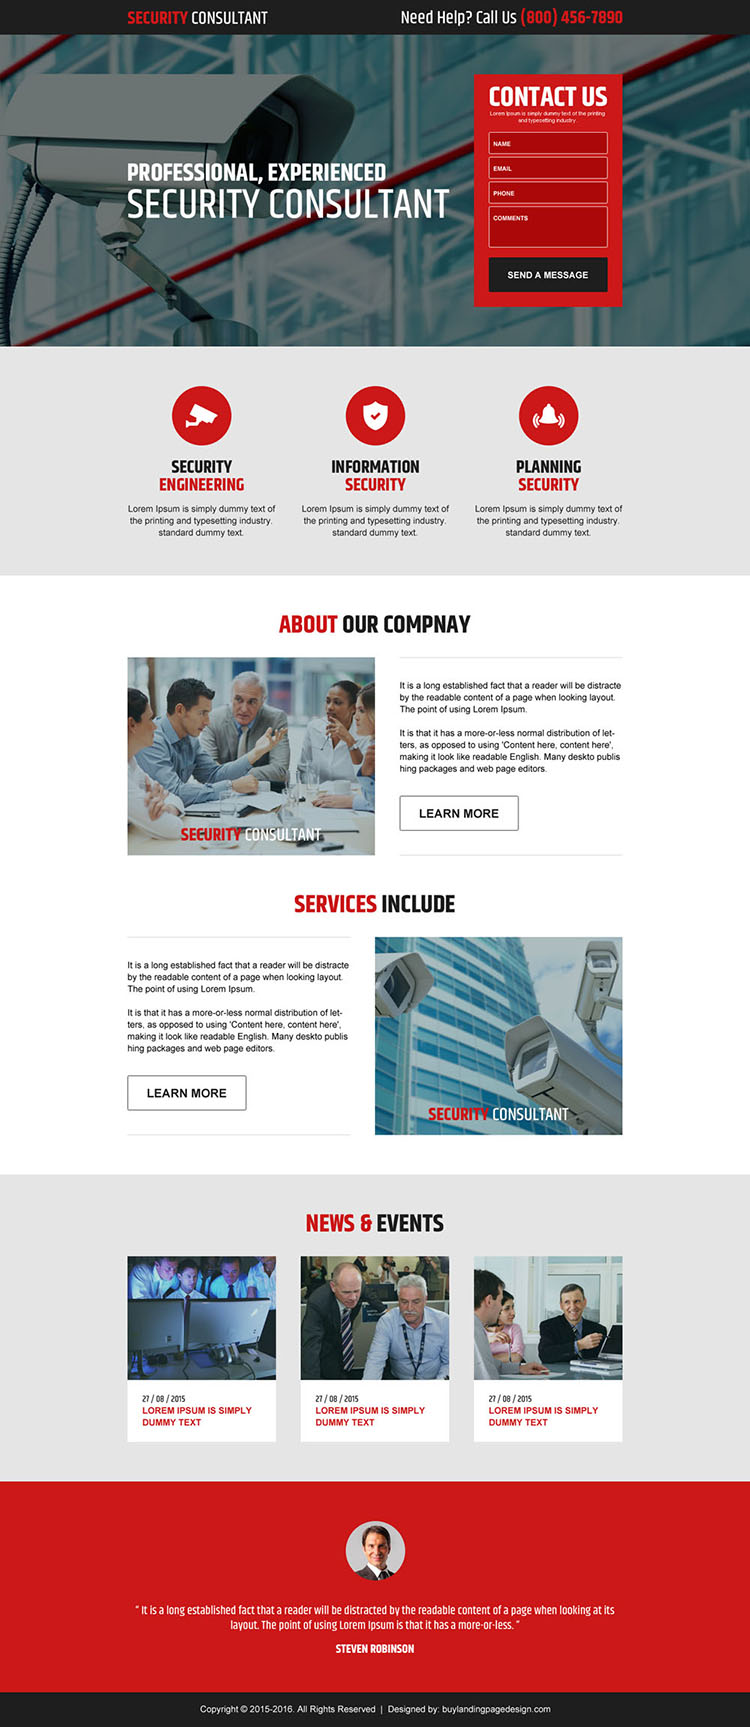 professional security consultant responsive landing page design